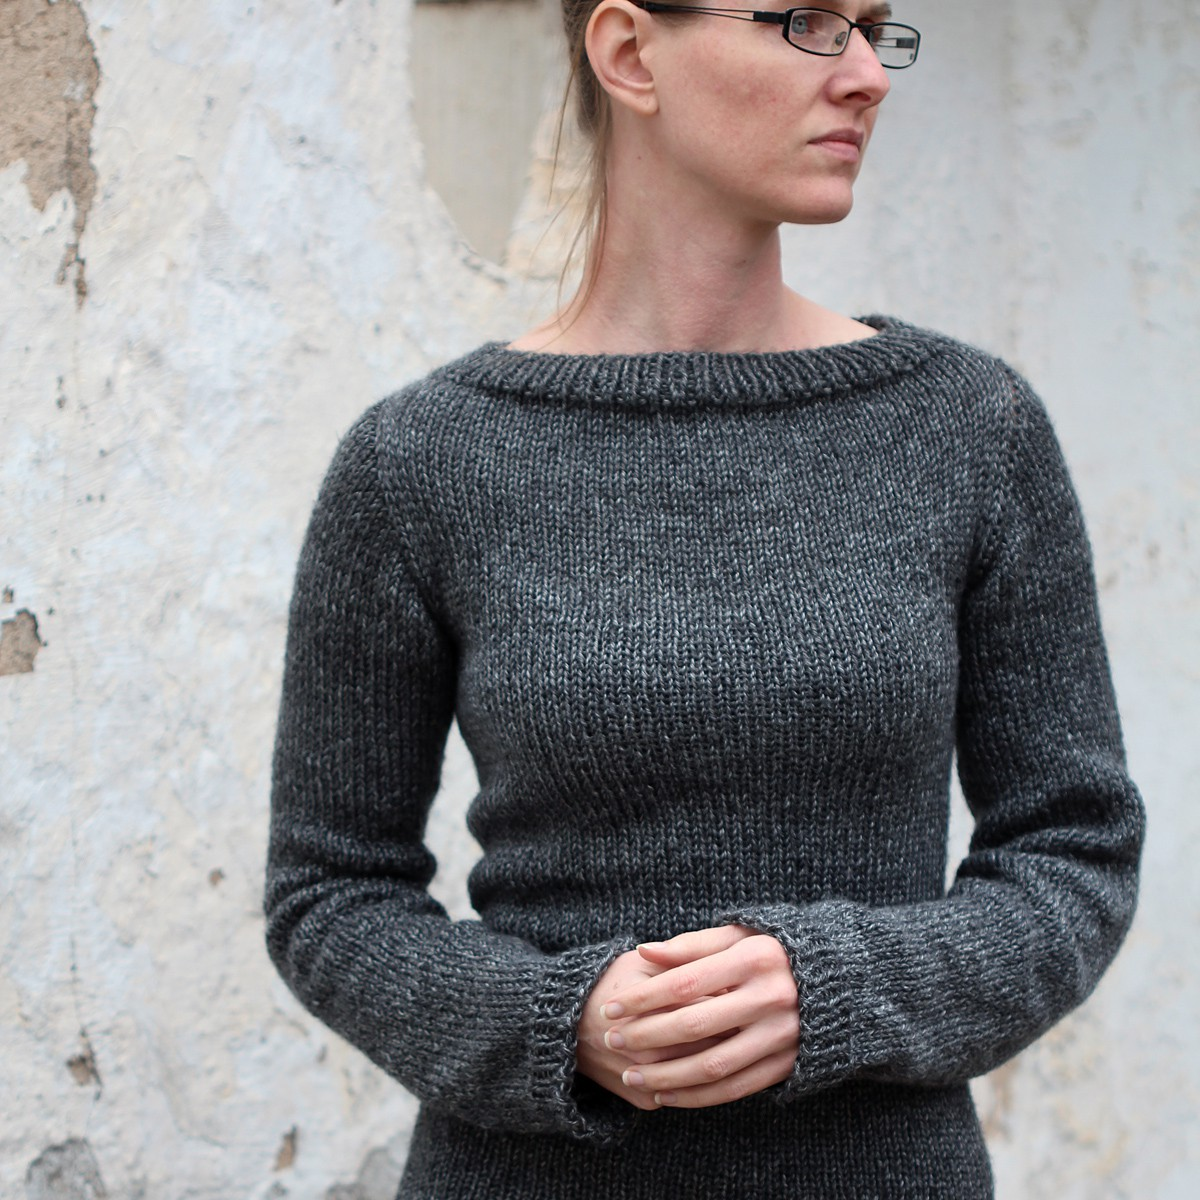 Discipline Sweater Knitting Pattern